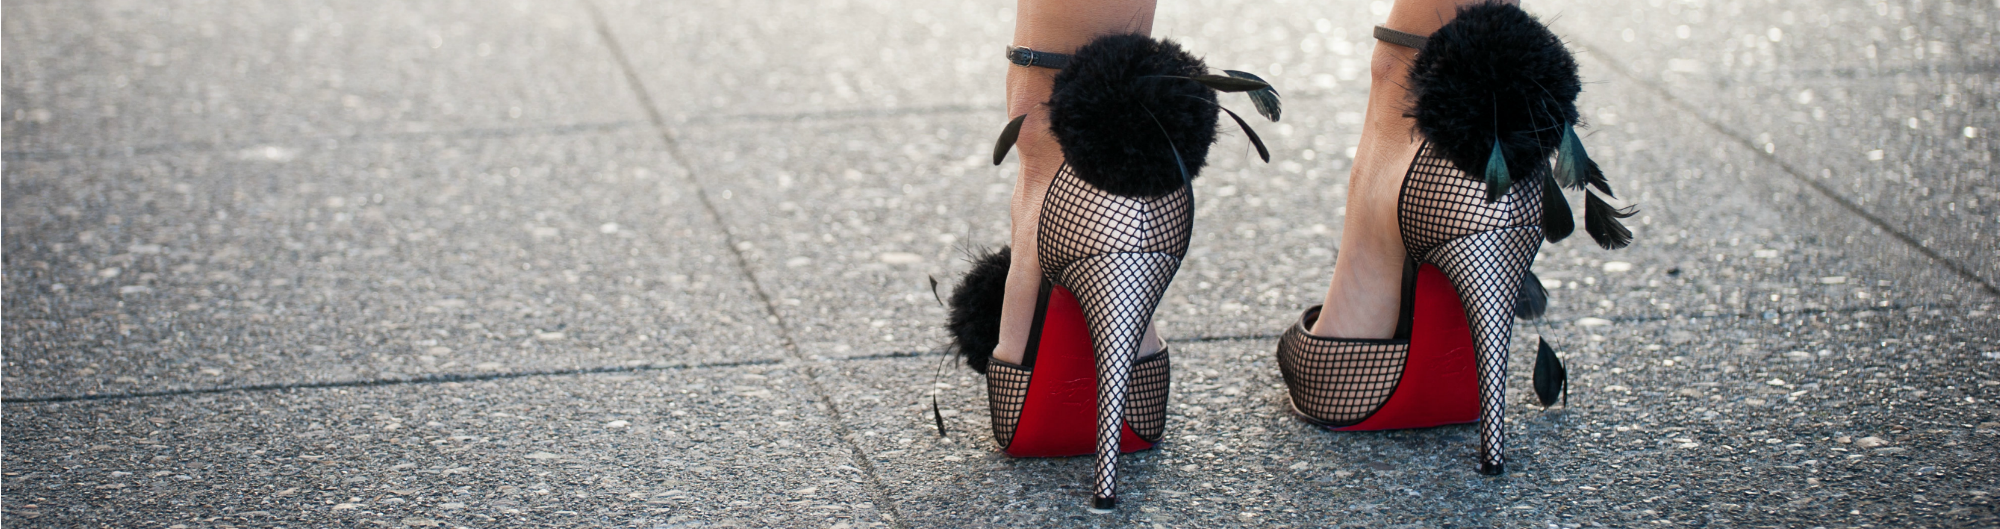 women's high heeled shoes with red soles